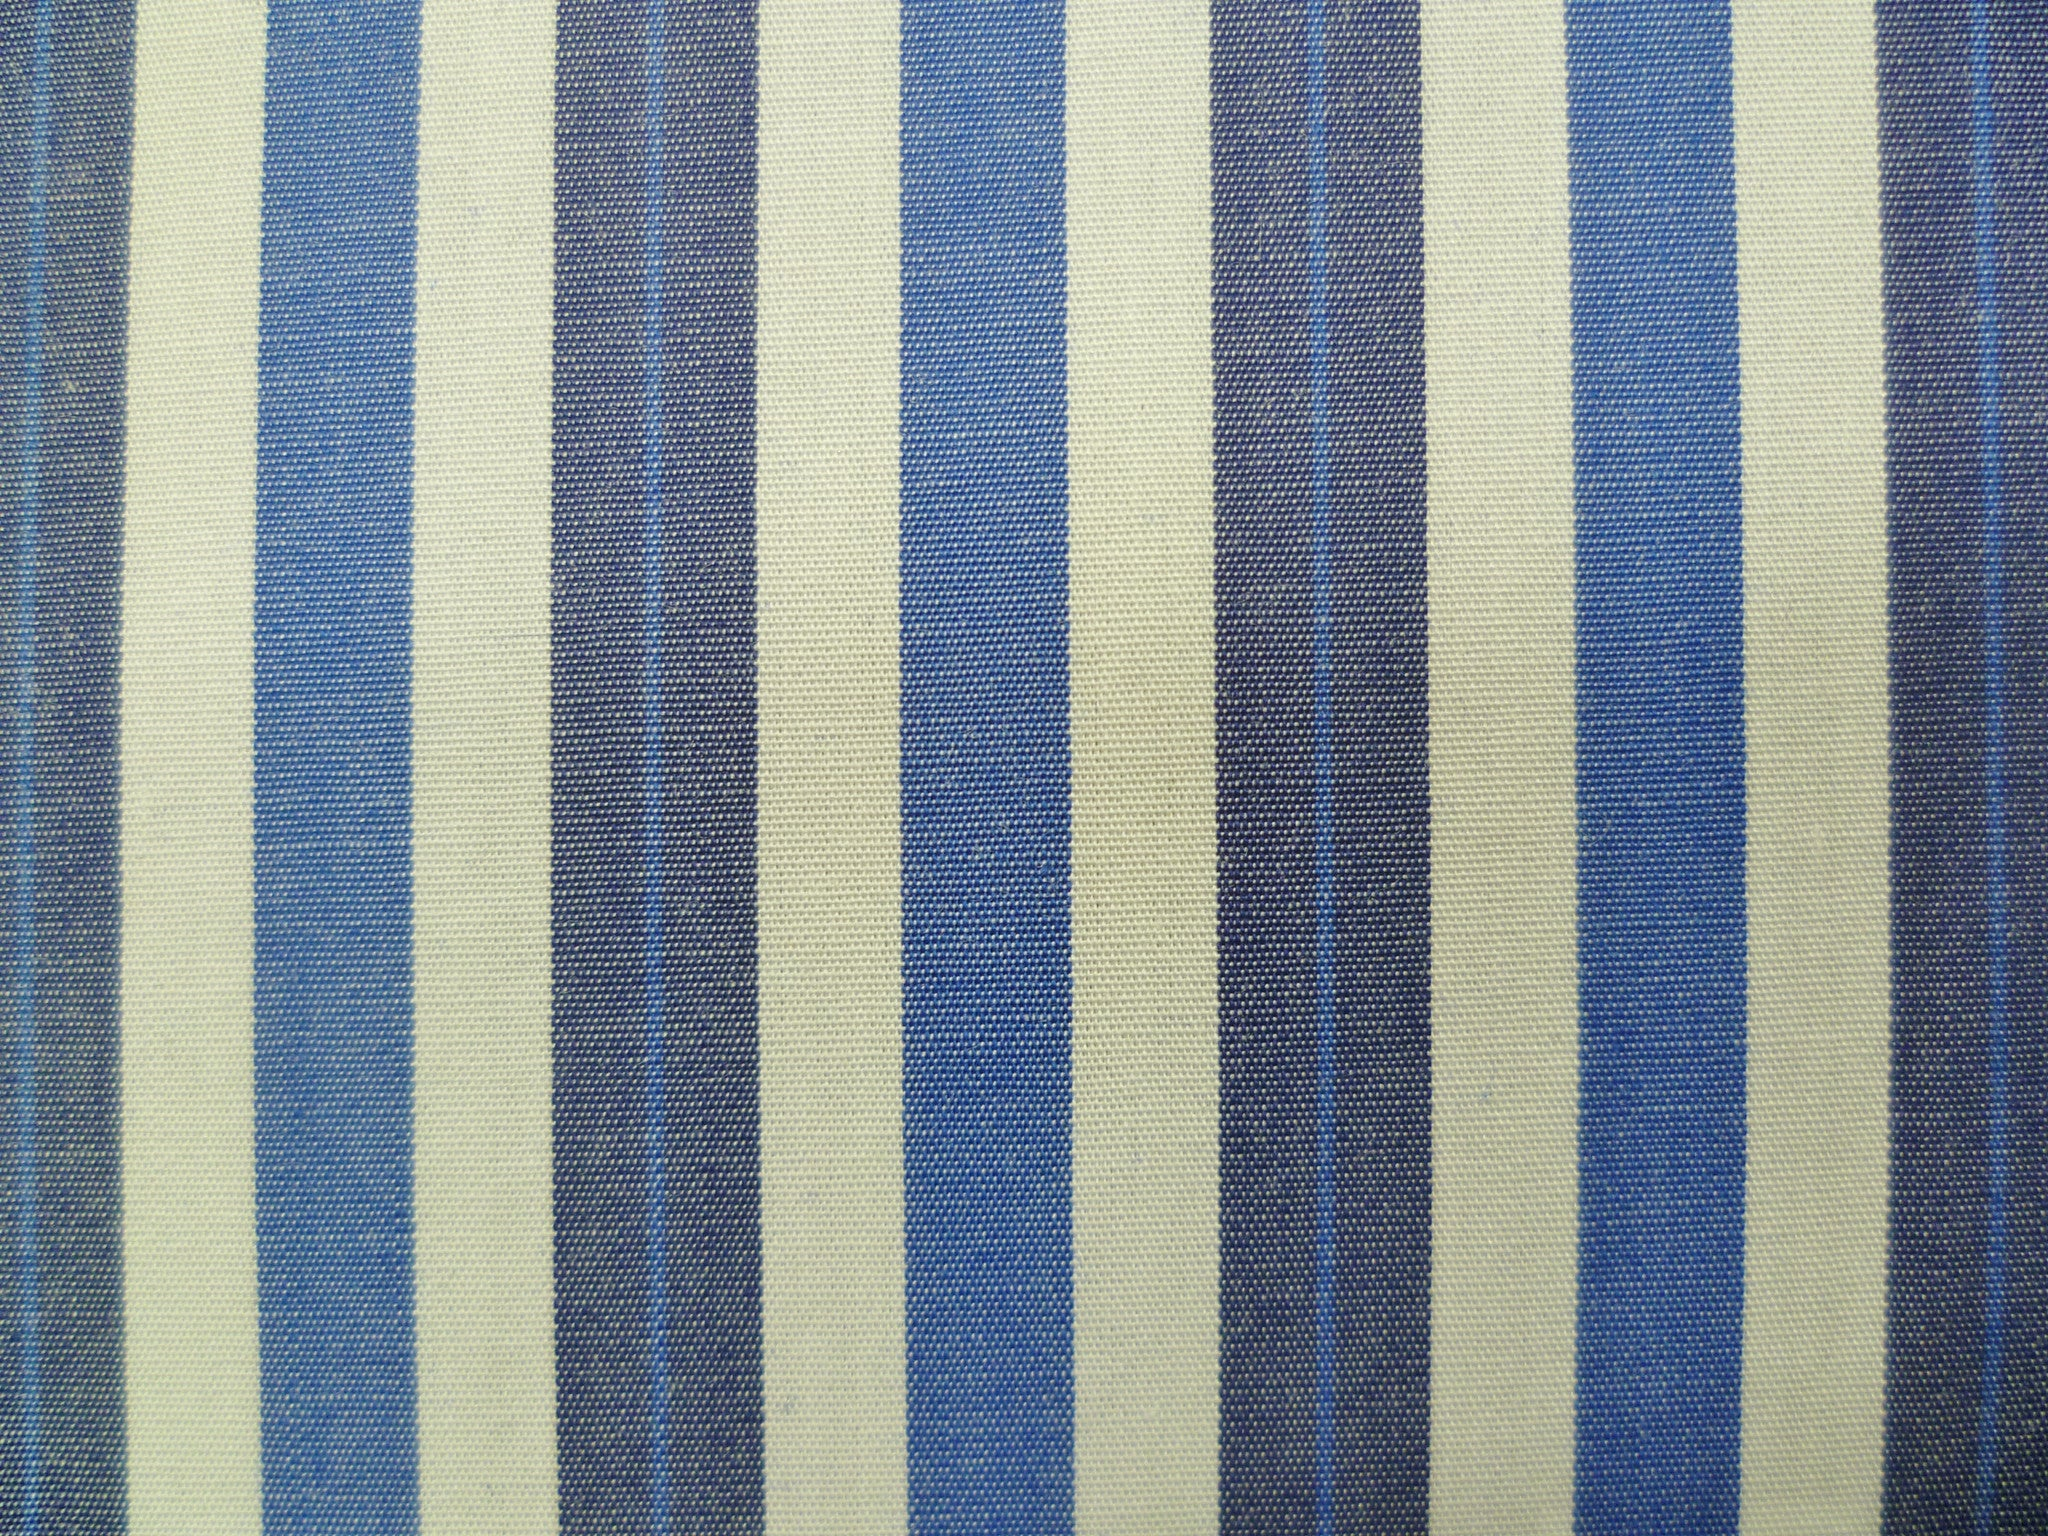 Ocean Blue, Navy and White Striped Cotton